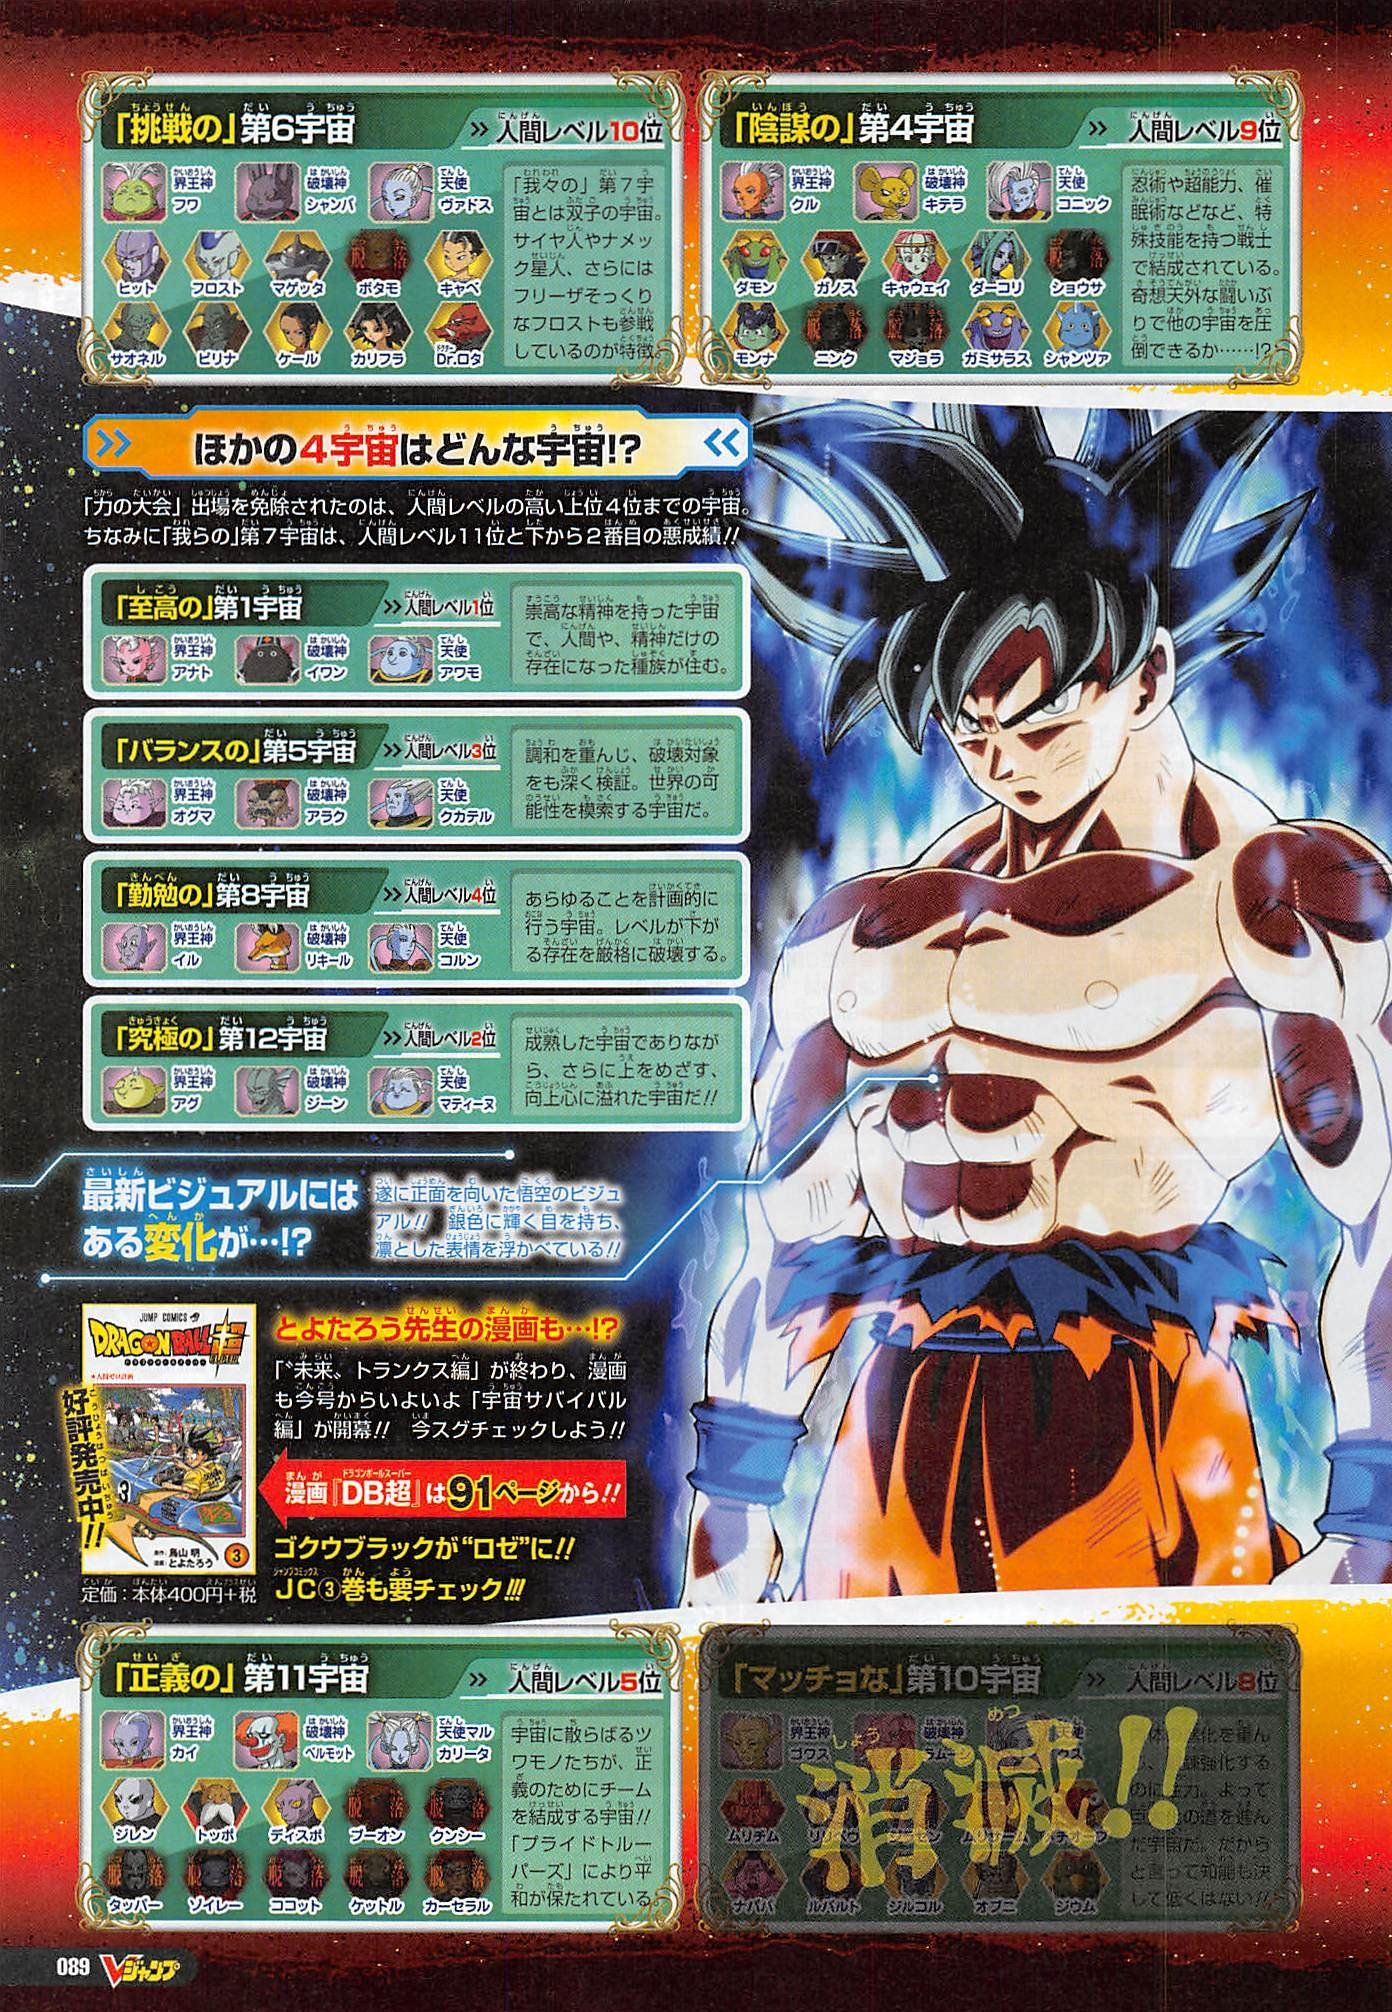 Dragon ball super front side of gokus new transformation shown dragon ball super front side of gokus new transformation shown voltagebd Gallery